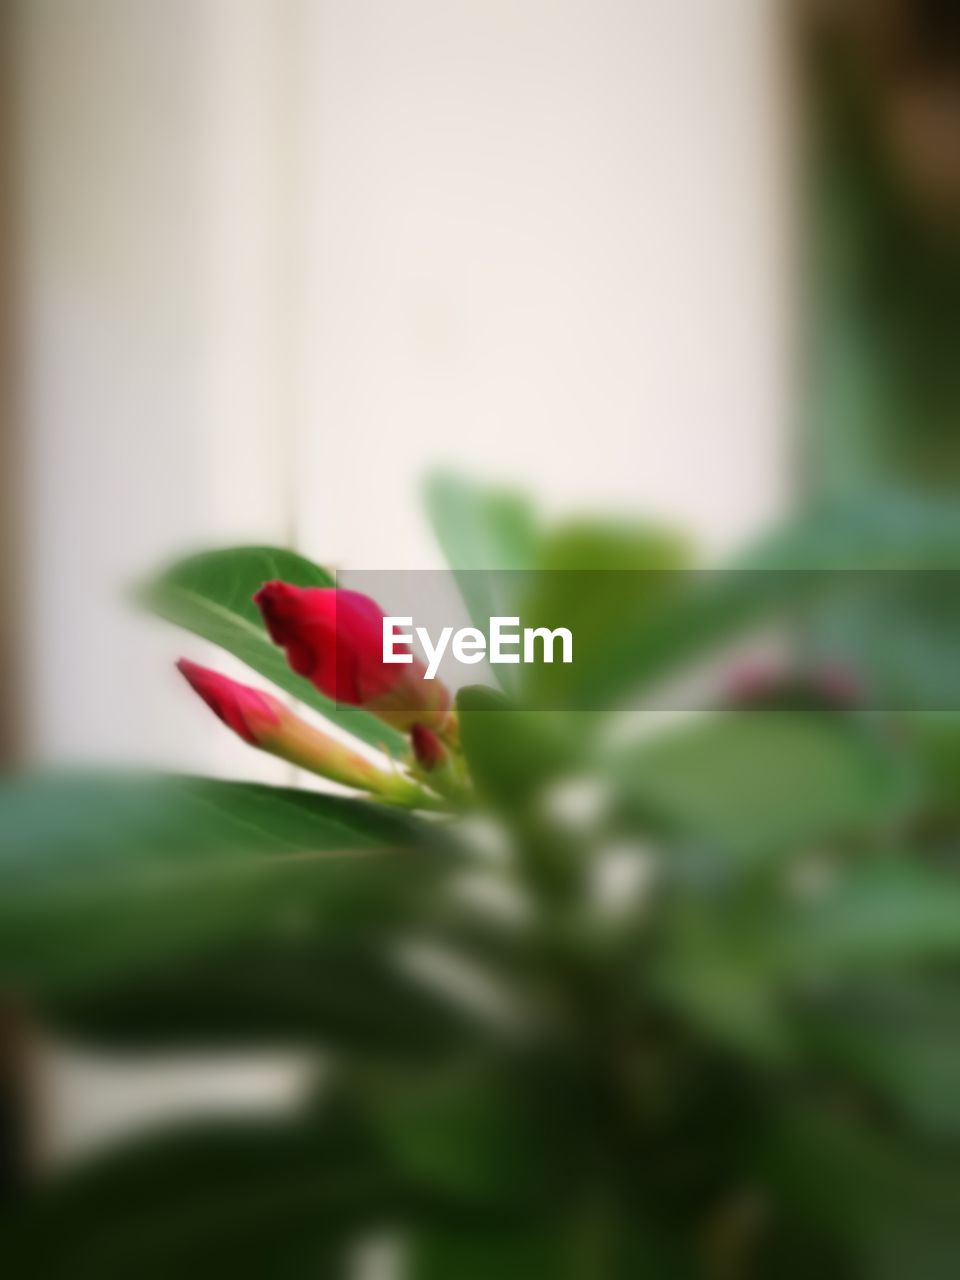 flower, fragility, petal, beauty in nature, freshness, nature, selective focus, growth, green color, flower head, rose - flower, no people, close-up, red, plant, day, outdoors